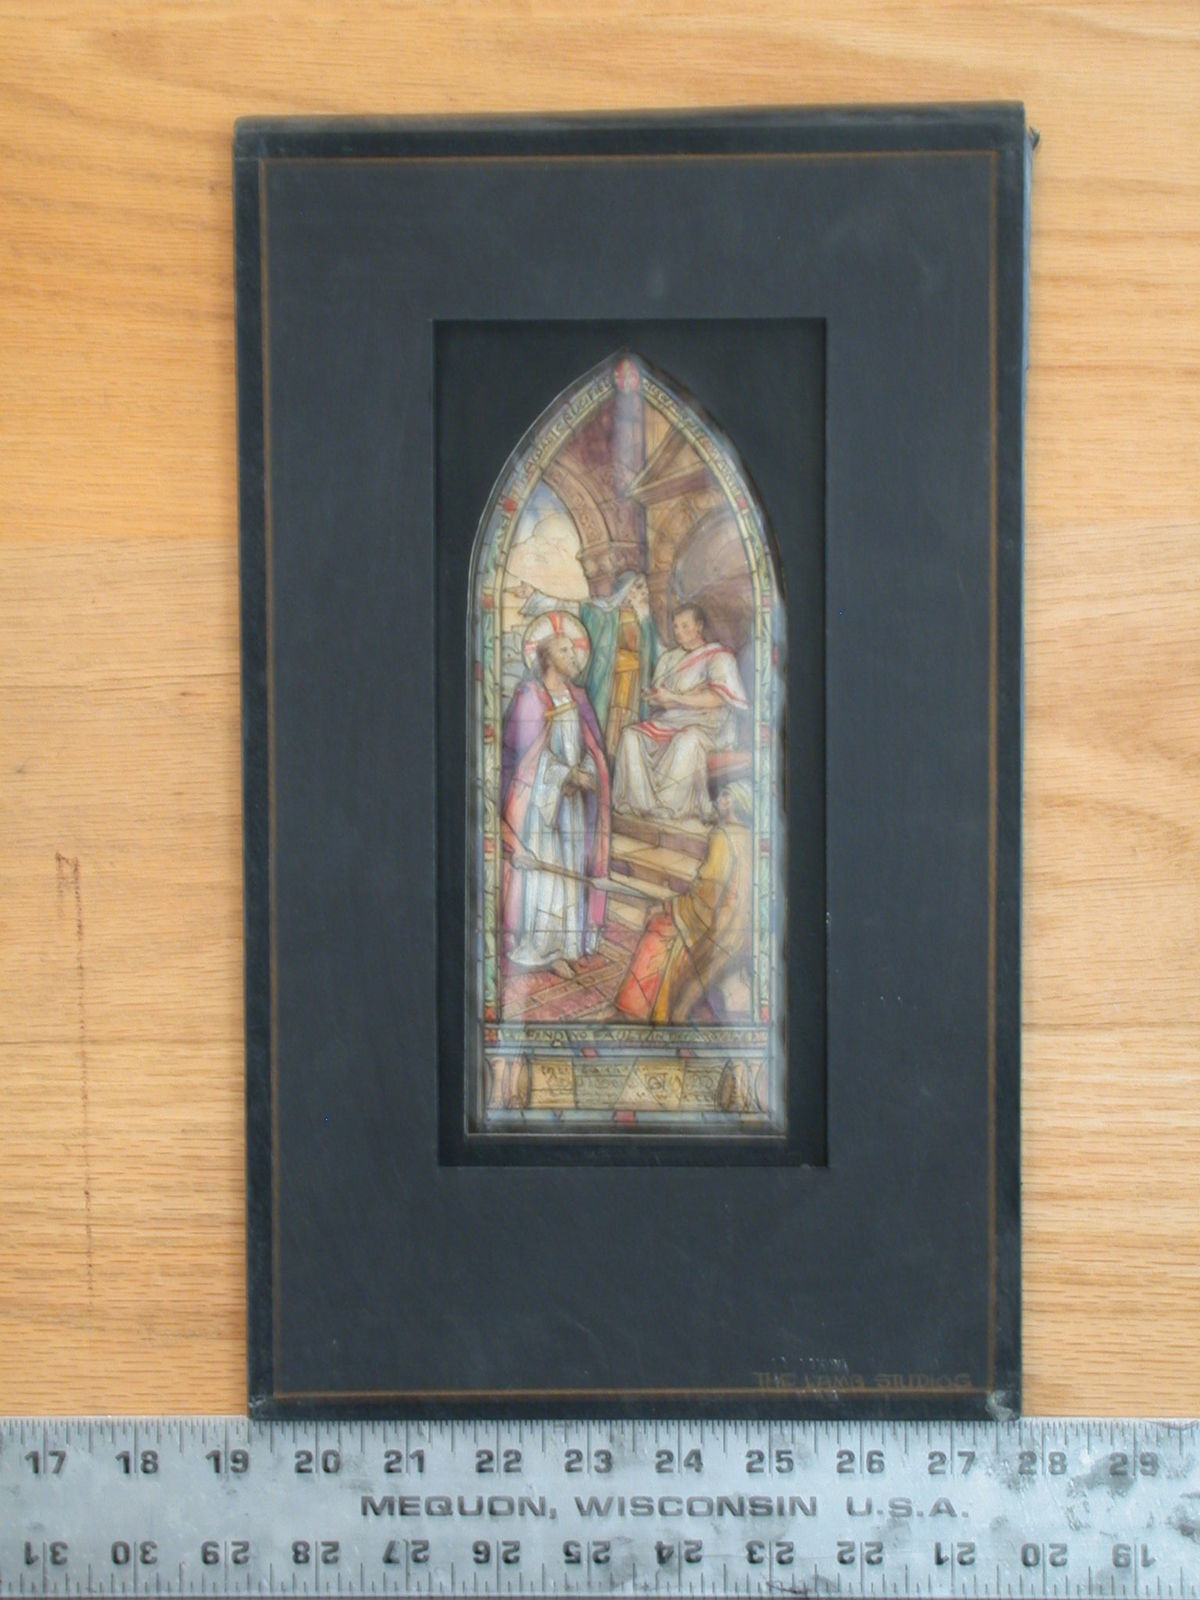 [Design drawing for stained glass memorial window showing Christ before Pilate, with architecture, carpet, throne in niche, projecting point of soldier's pike, border with quotes]